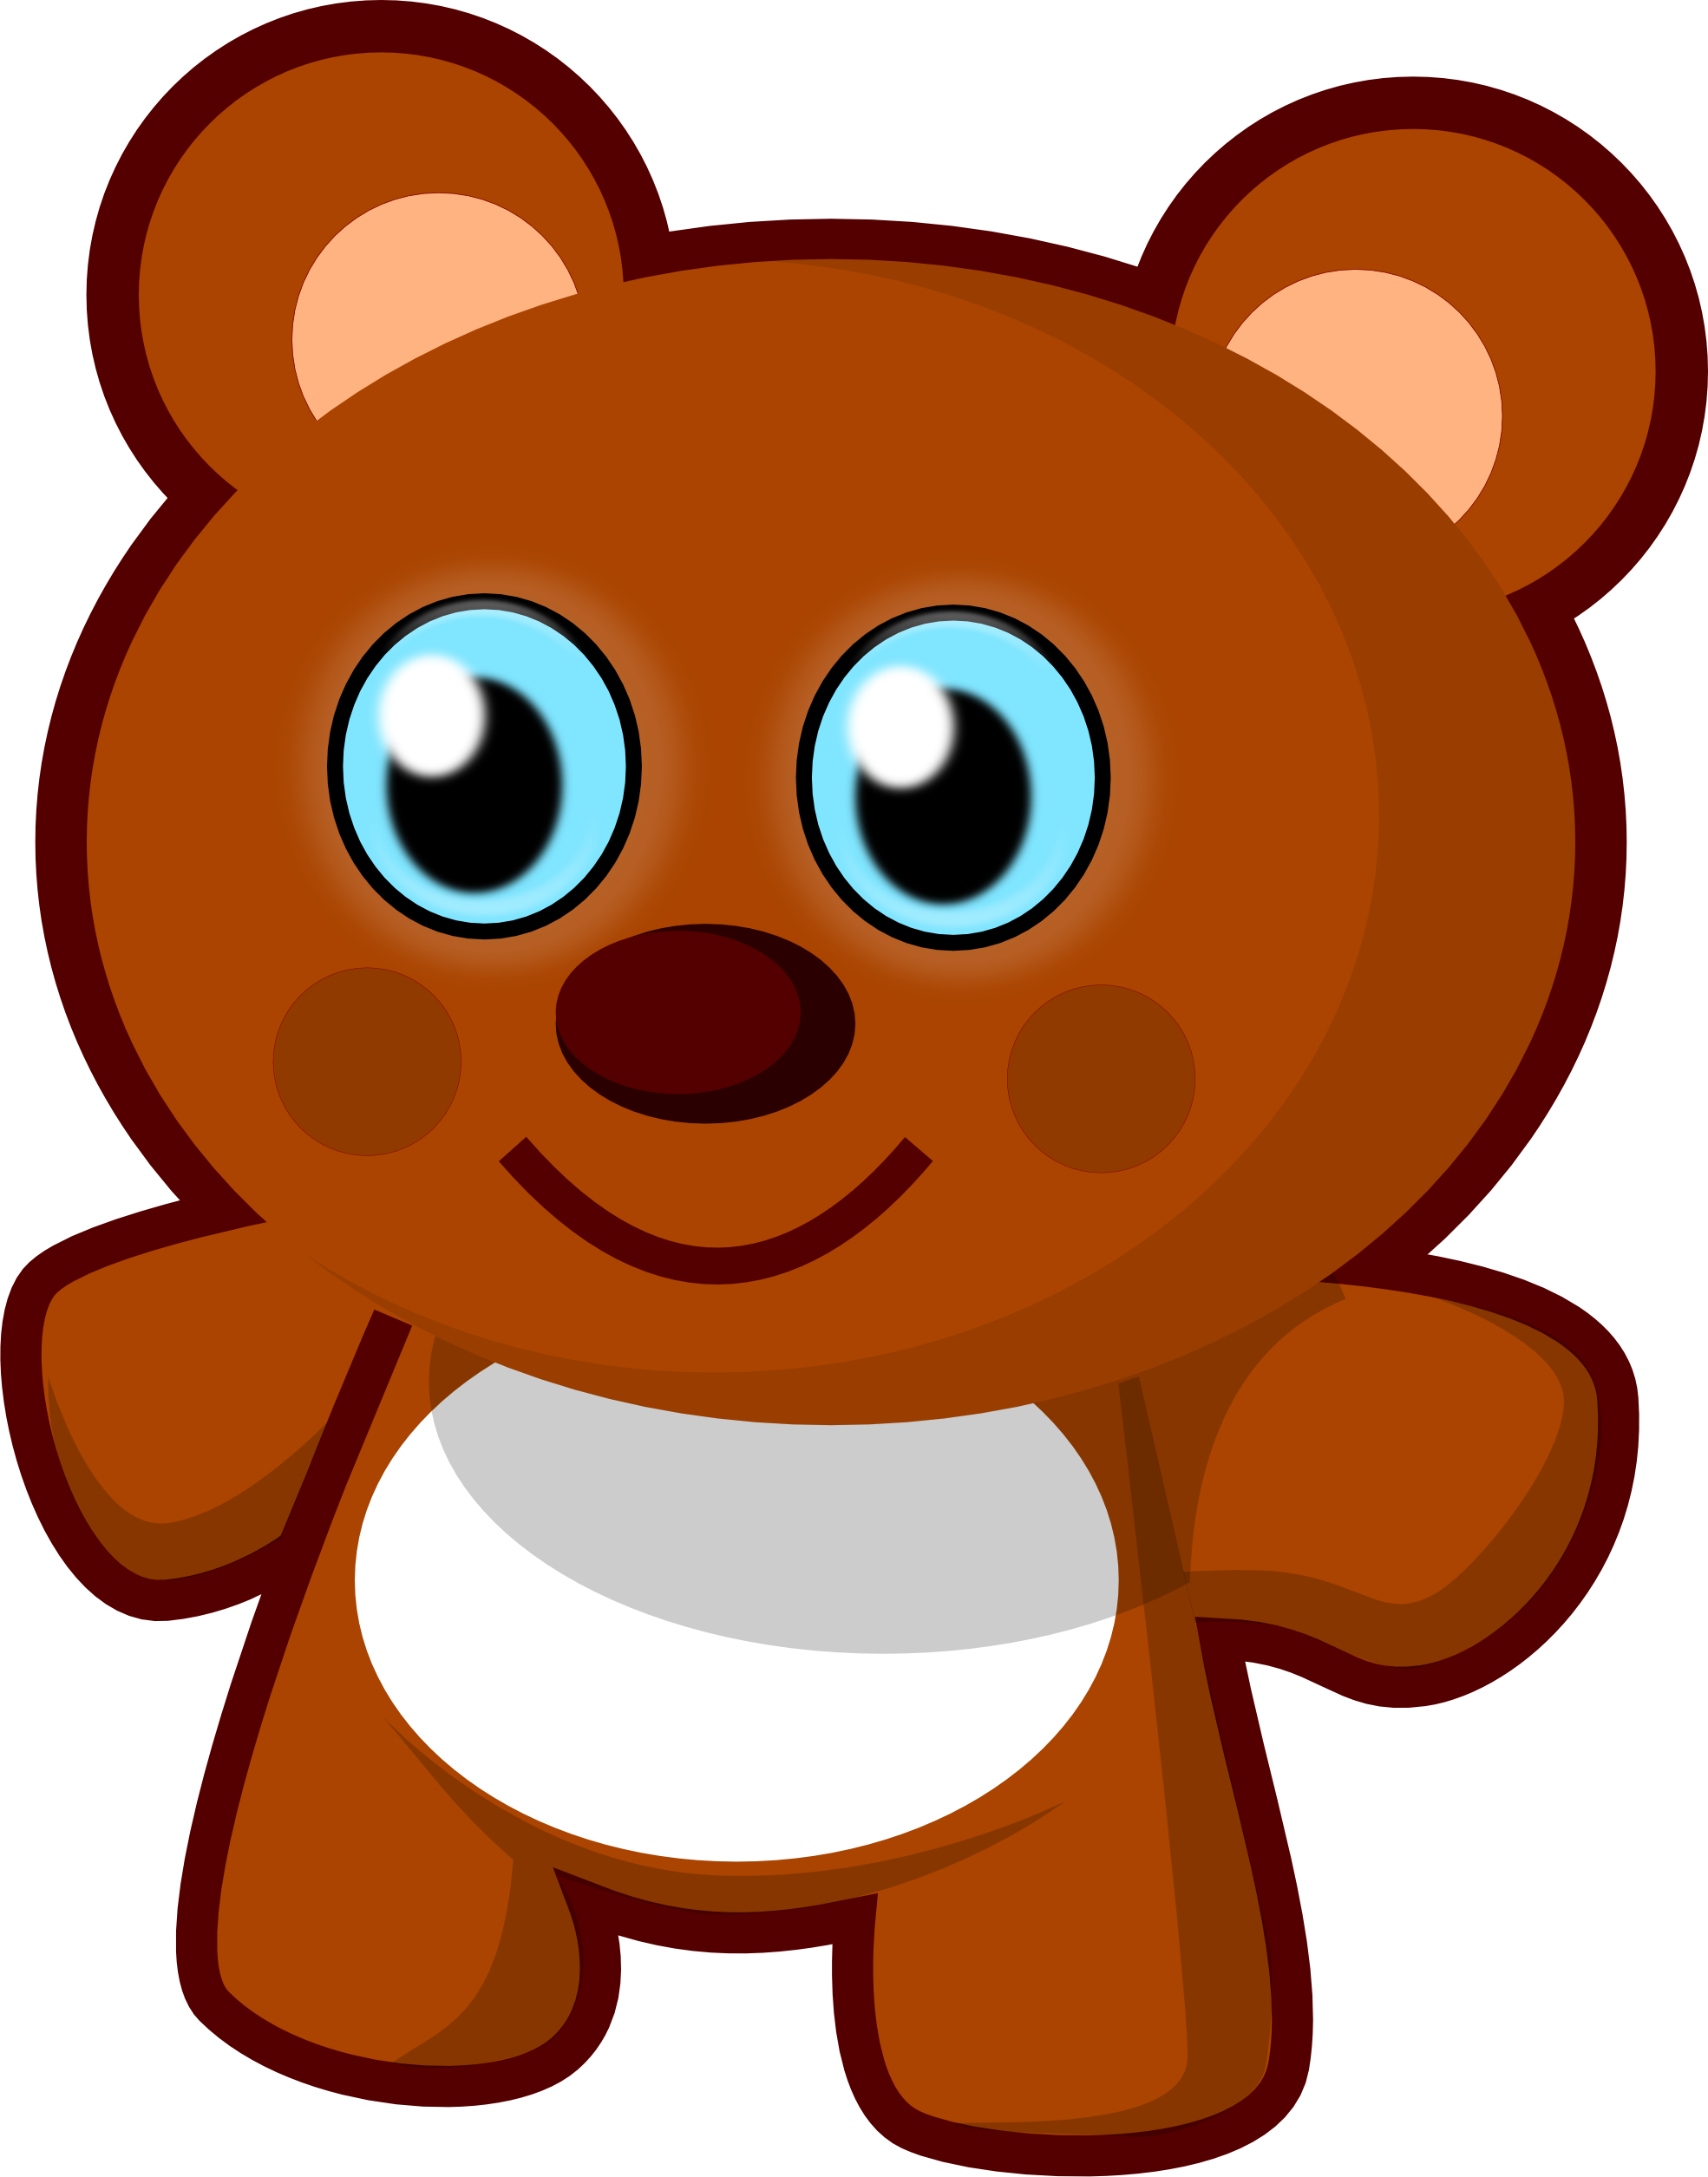 Bear doll clipart graphic transparent library Free Clip art vector design of Little Bear Toy SVG has been ... graphic transparent library